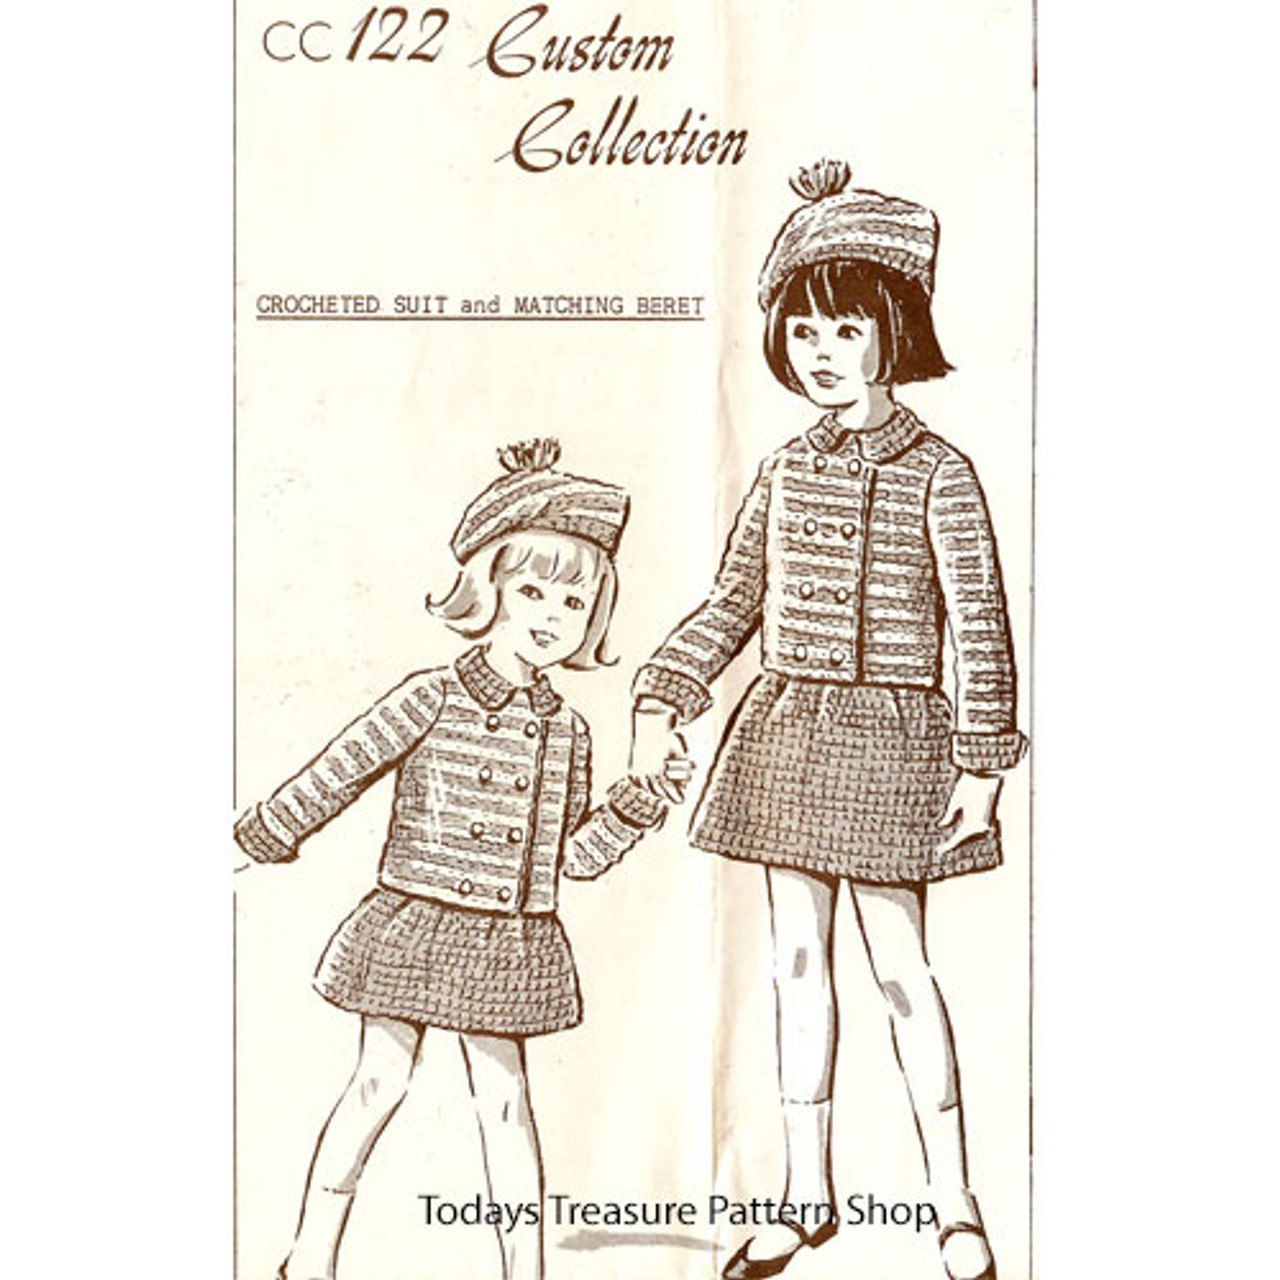 Custom Collection Girls Crocheted Suits Pattern